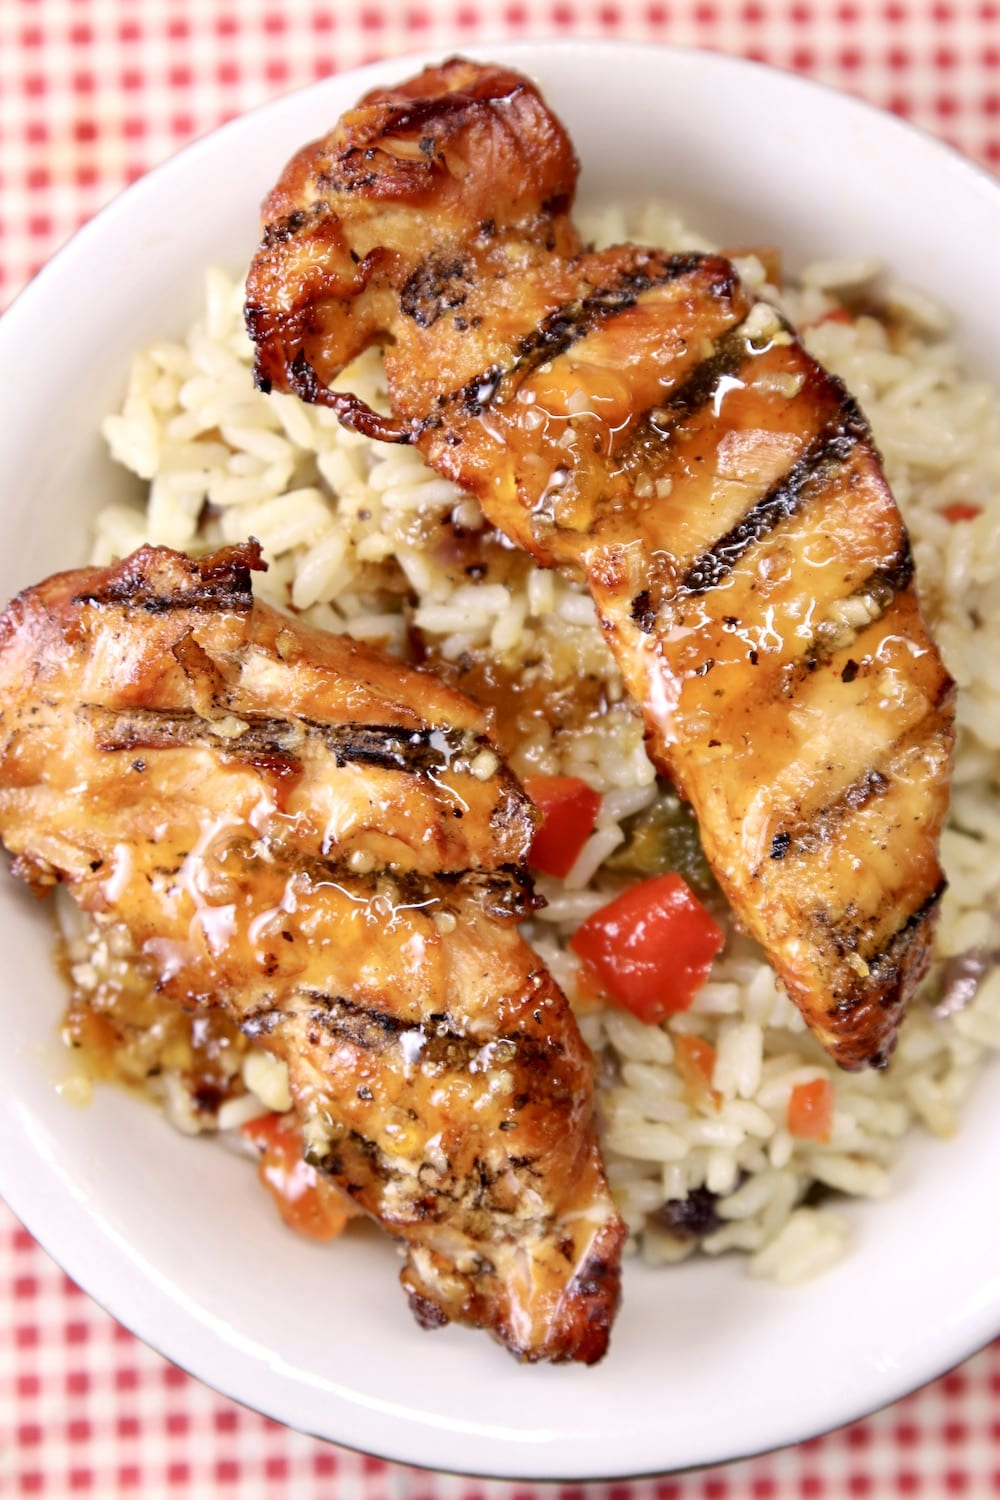 Grilled chicken tenders with rice pilaf in a bowl